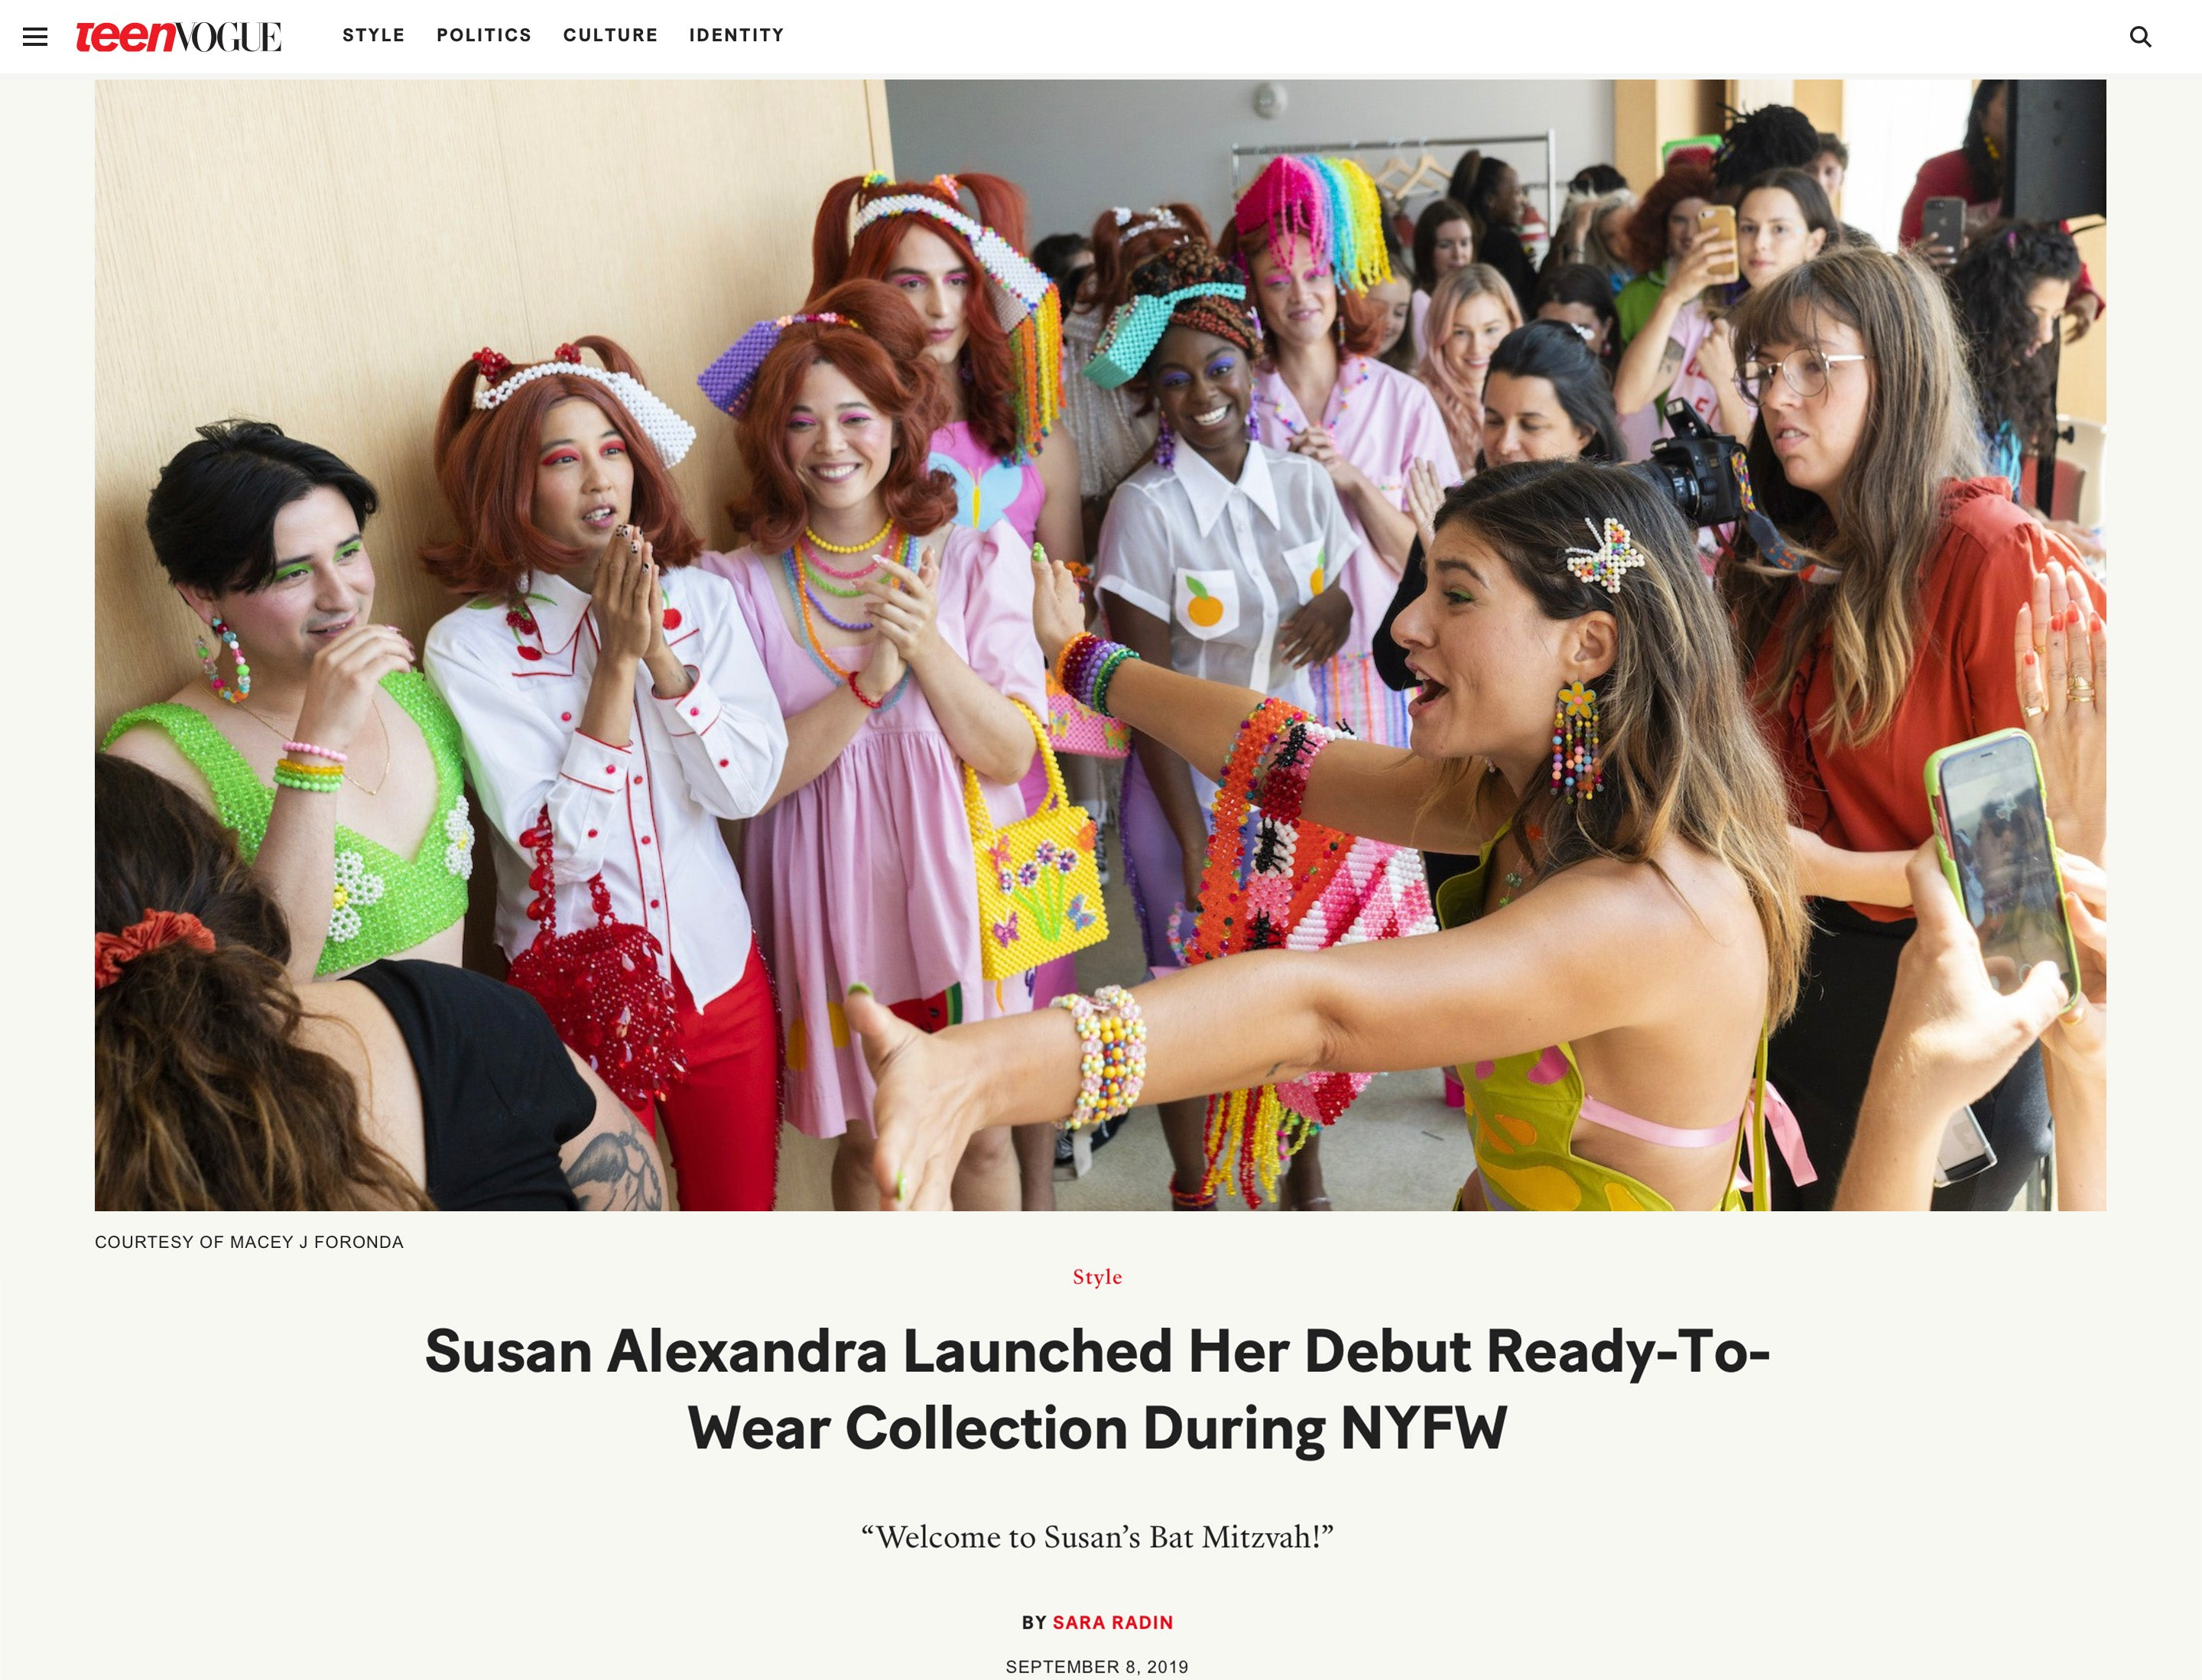 Susan Alexandra's RTW Collection in Teen Vogue